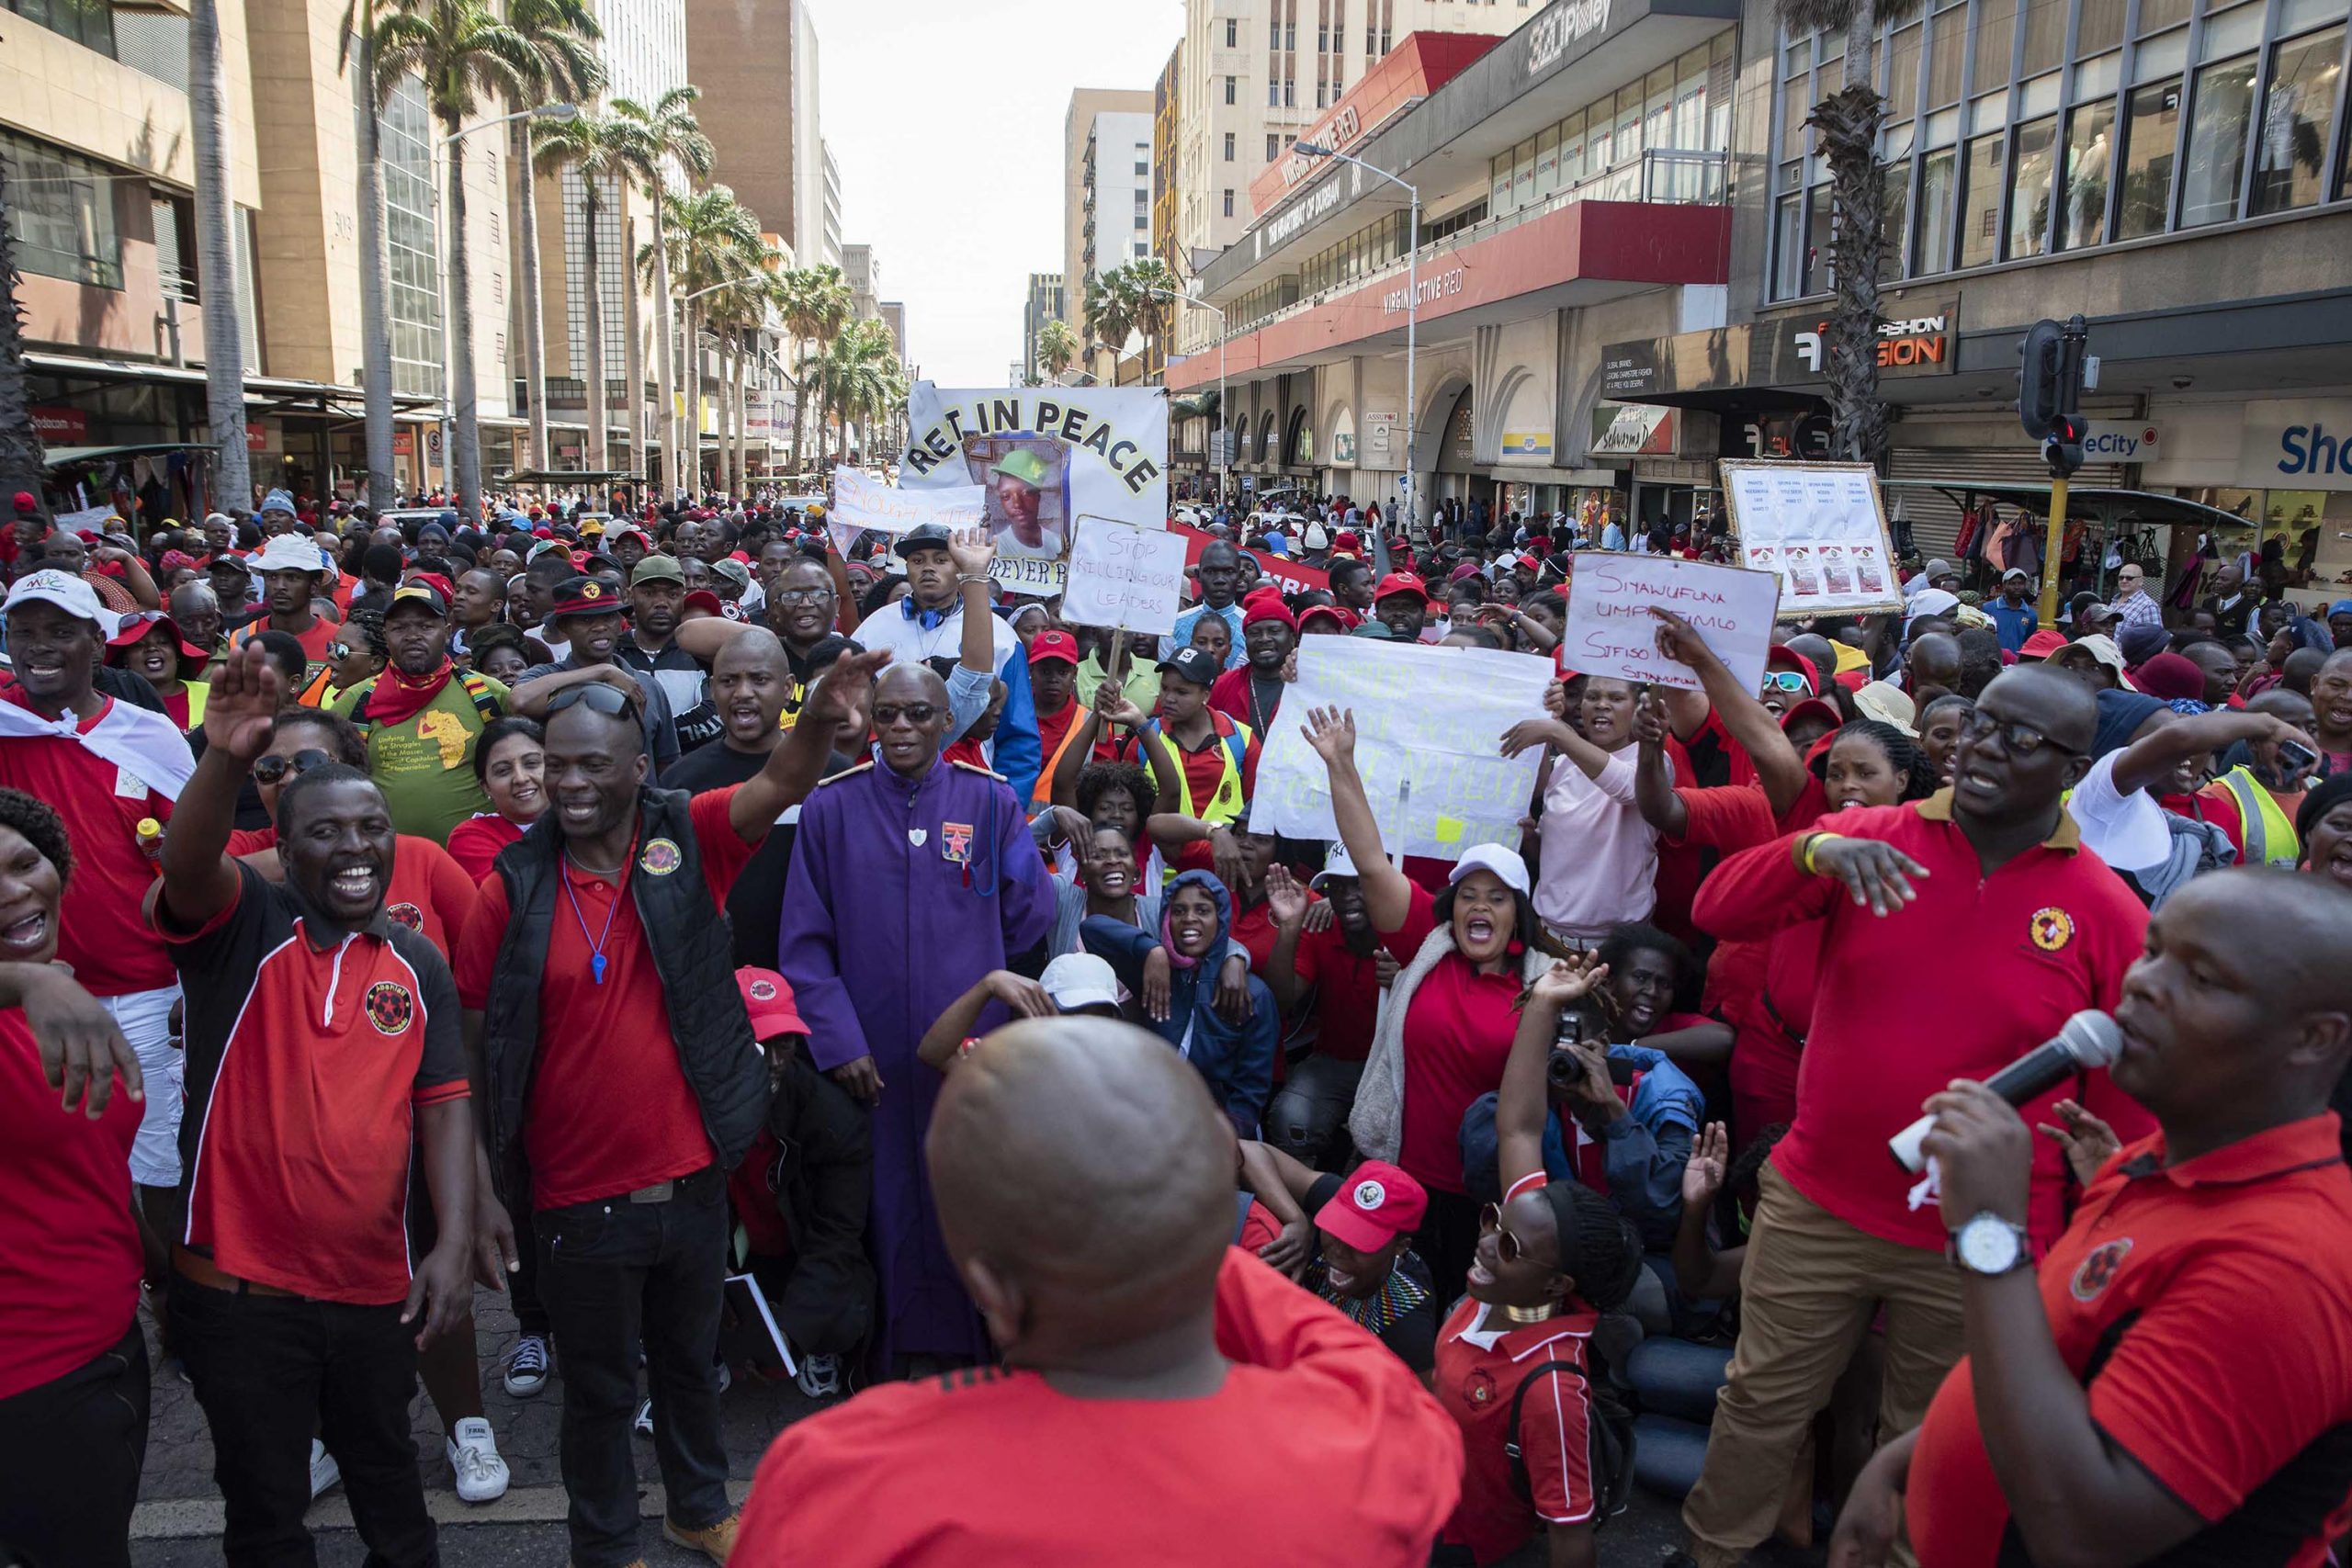 8 October 2018: Abahlali baseMjondolo members march in Durban in protest against politically motivated killings. (Photograph by Madelene Cronjé)